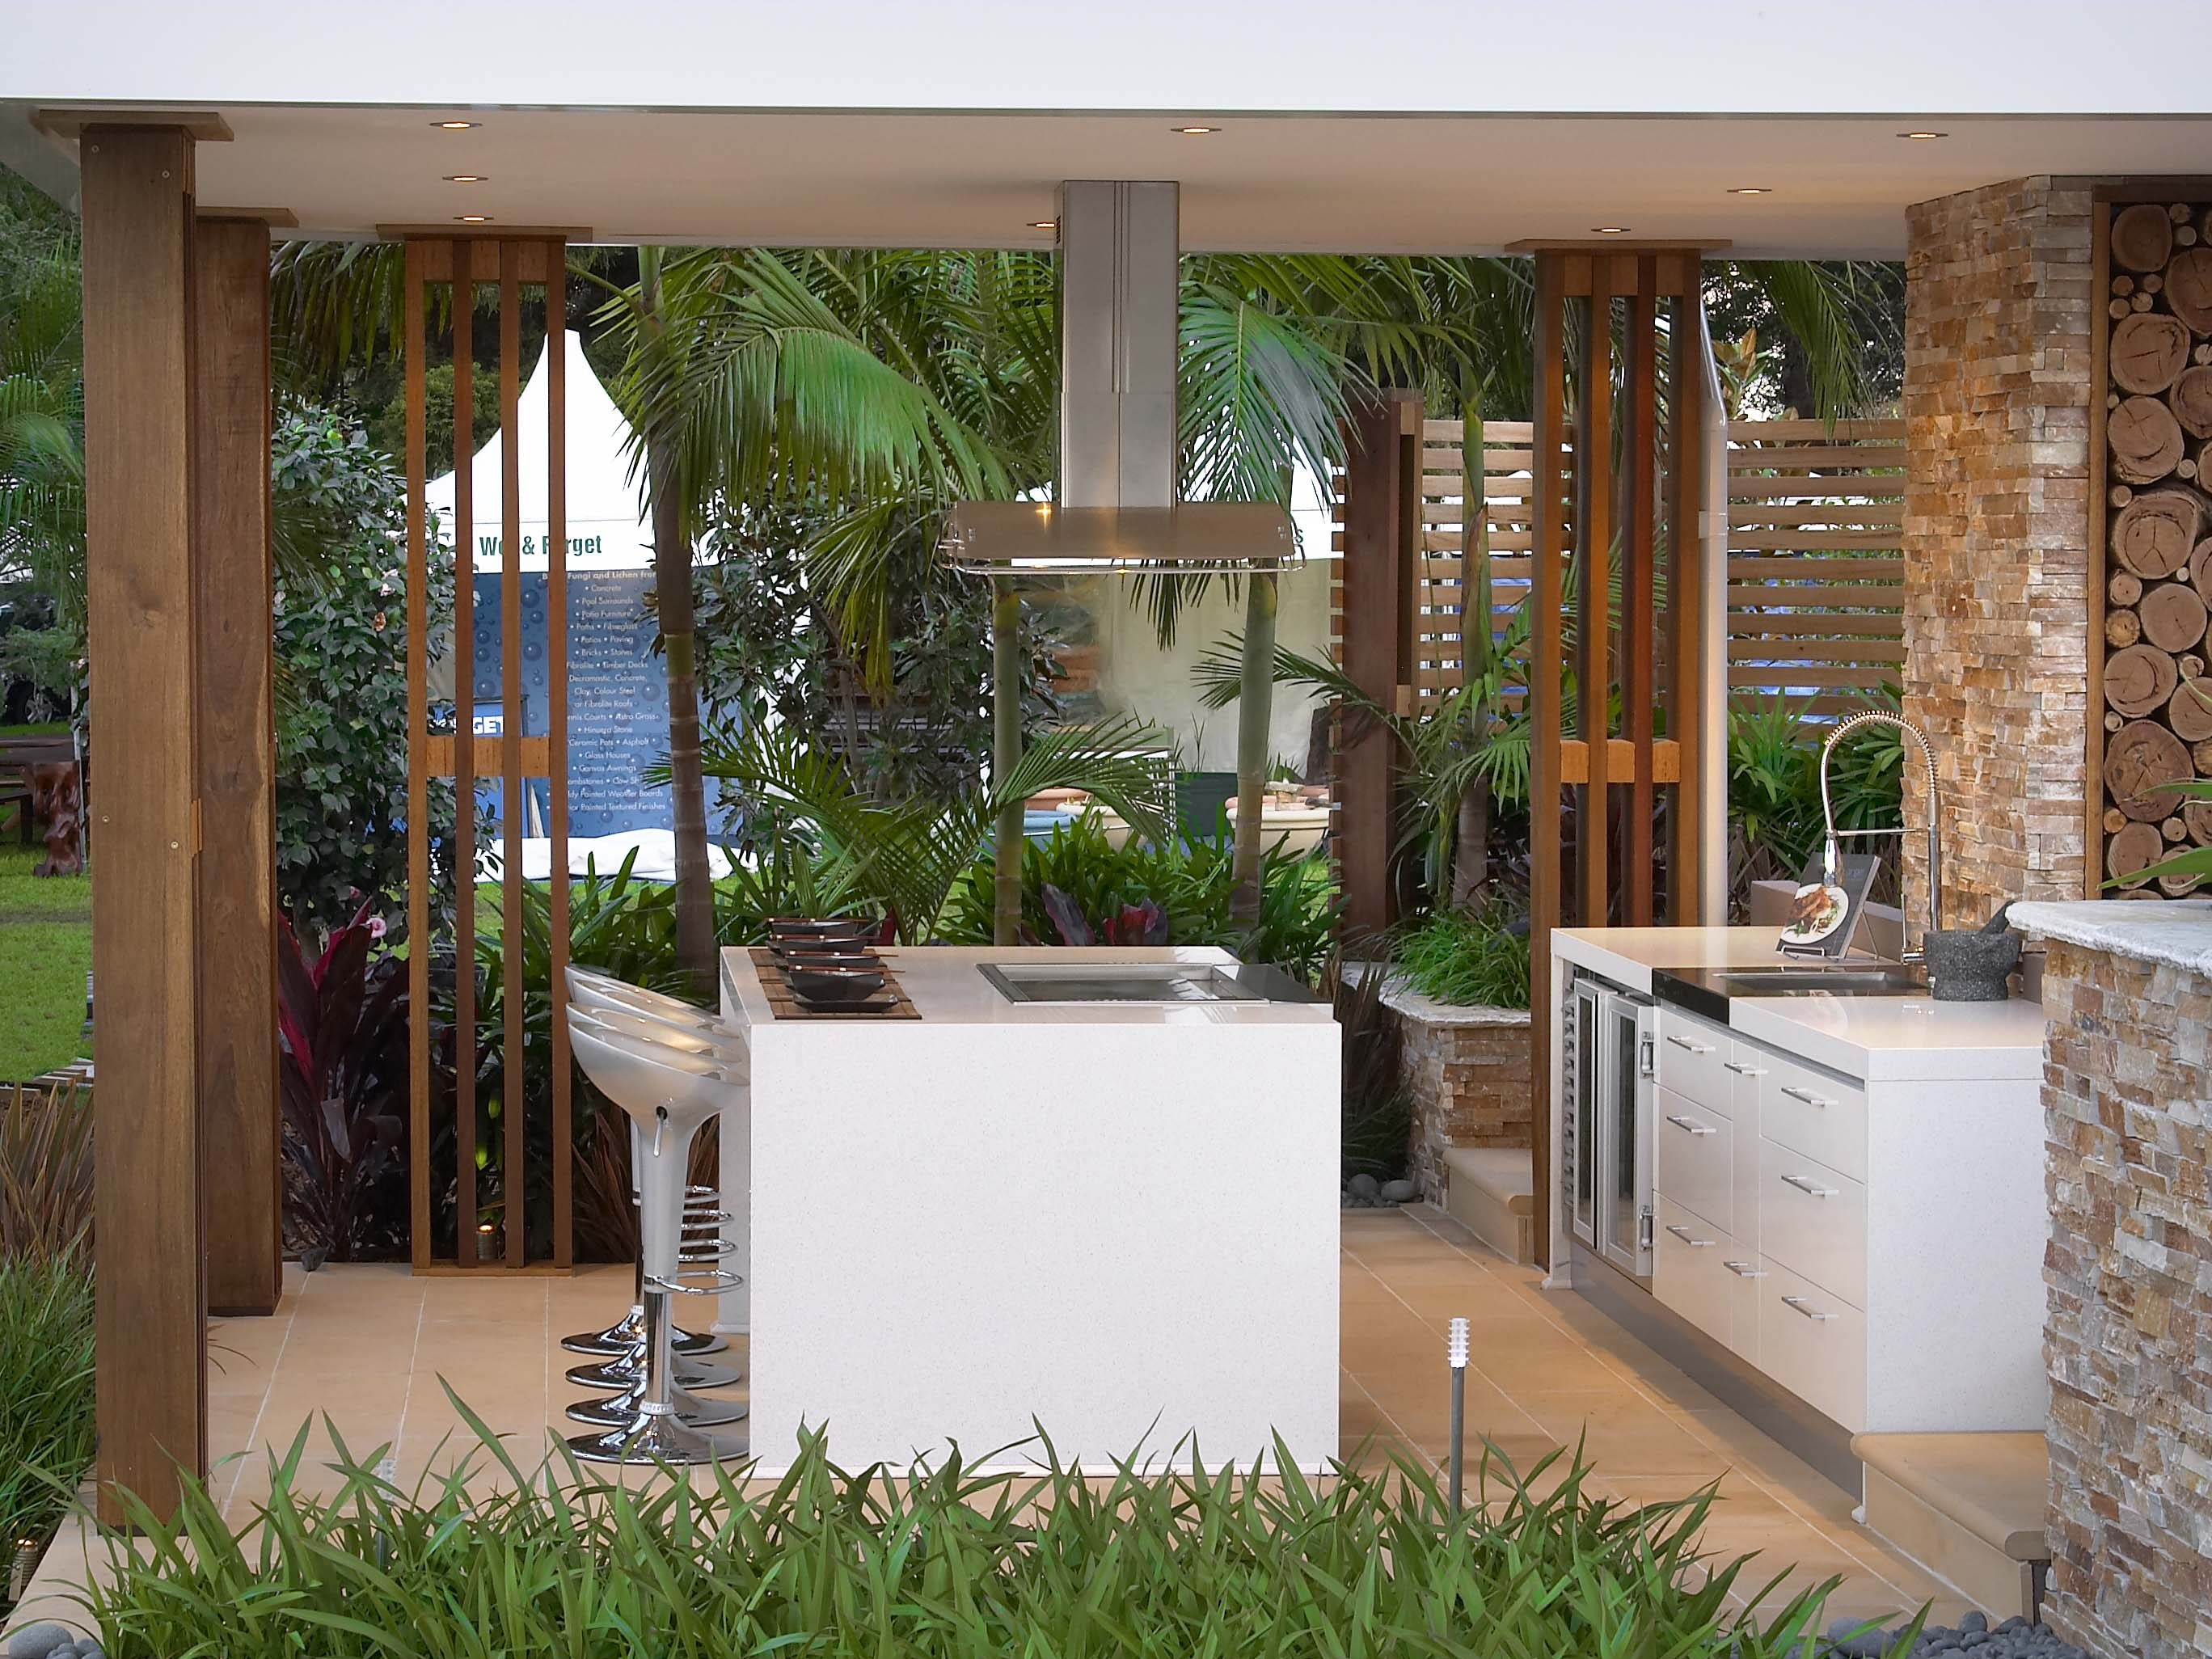 Kastell Kitchens took the Australian climate into account when considering the hard-wearing materials for this design.